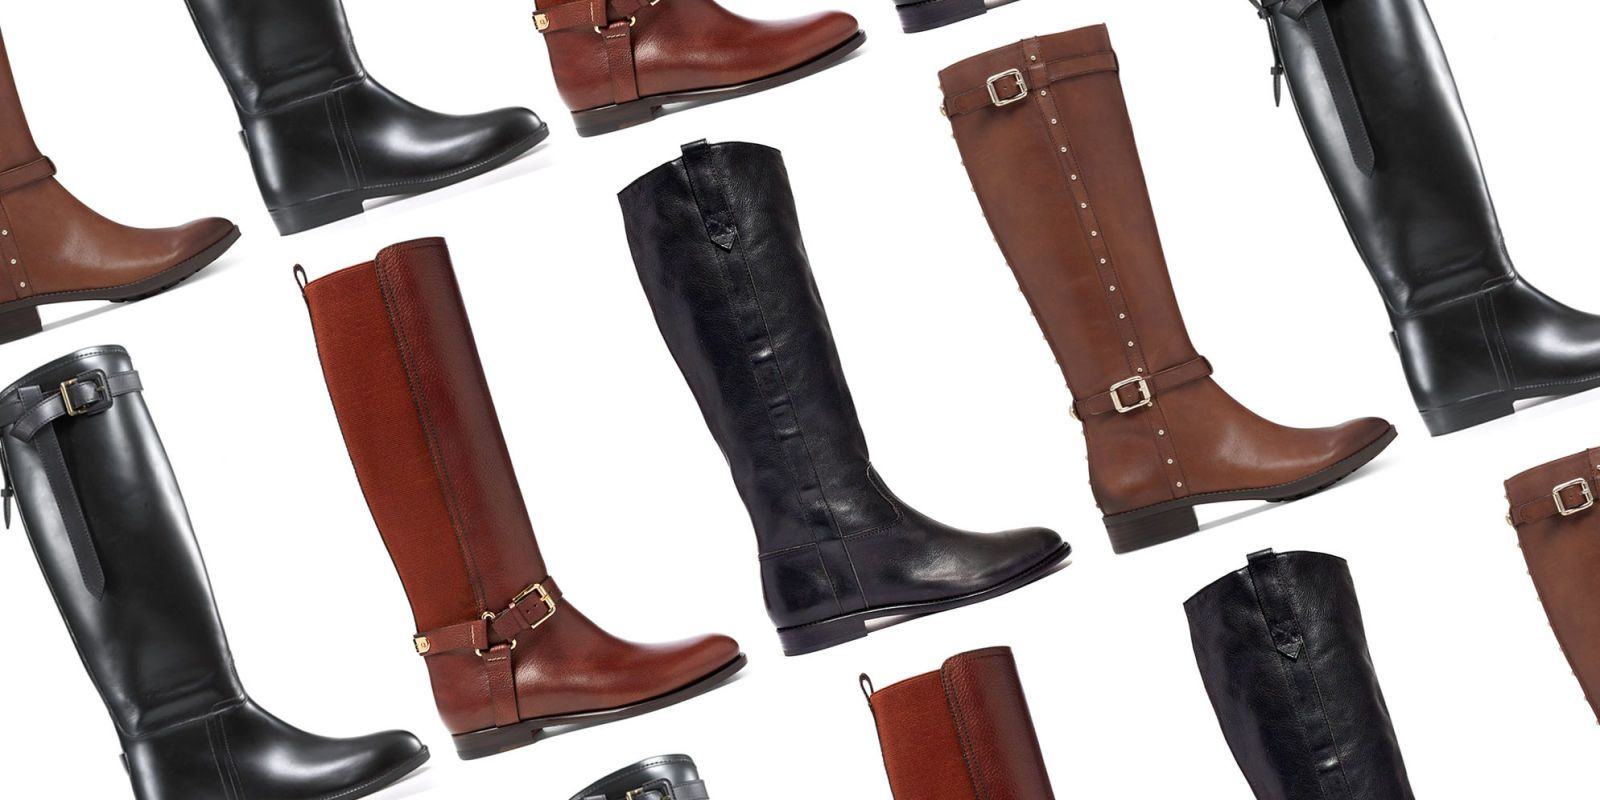 Brown and Black Riding Boots for Women